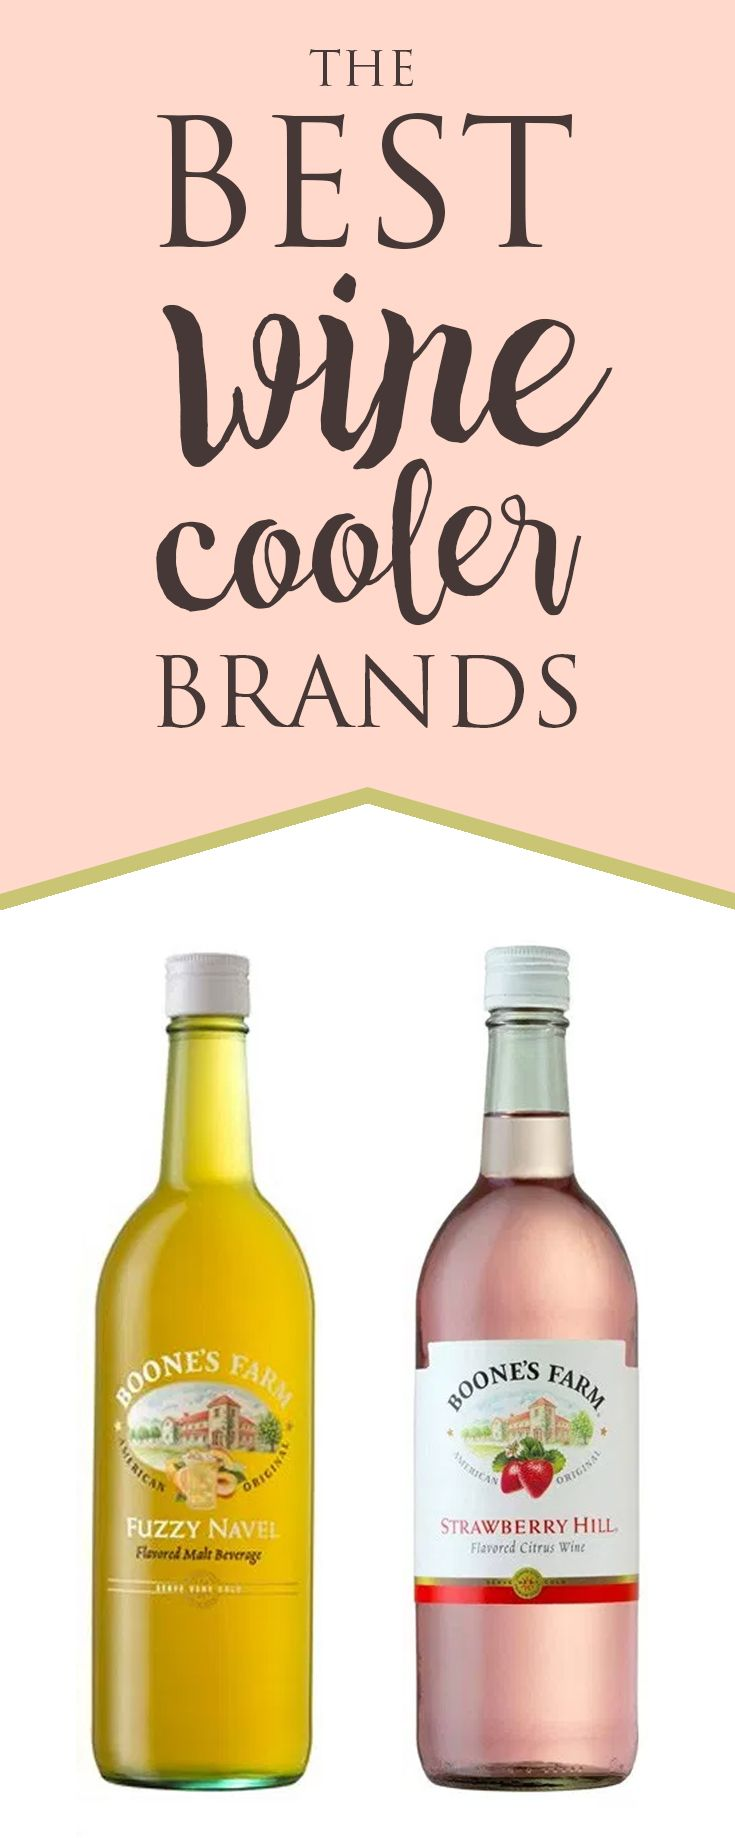 Best Wine Coolers Drinks best 25+ seagrams wine coolers ideas only on pinterest | wine